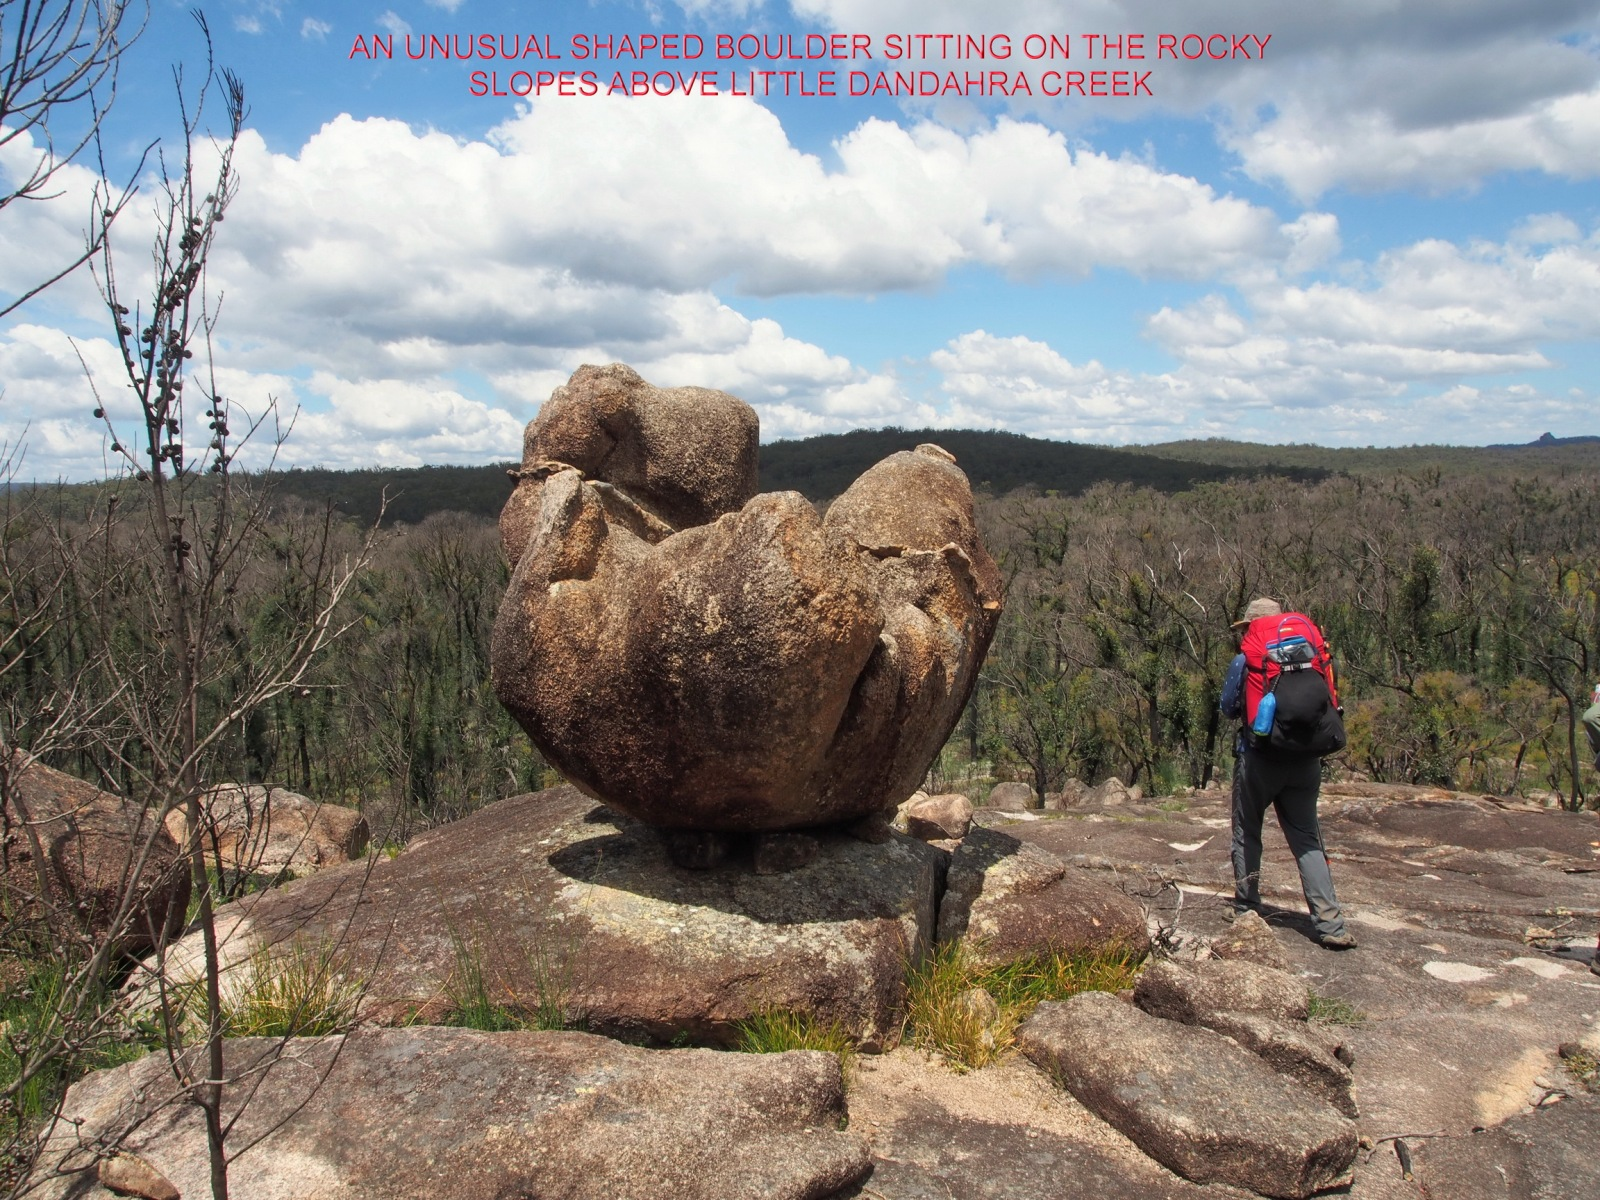 AN UNUSUAL SHAPED BOULDER SITTING ON THE ROCKY SLOPES ABOVE LITTLE DANDAHRA CREEK